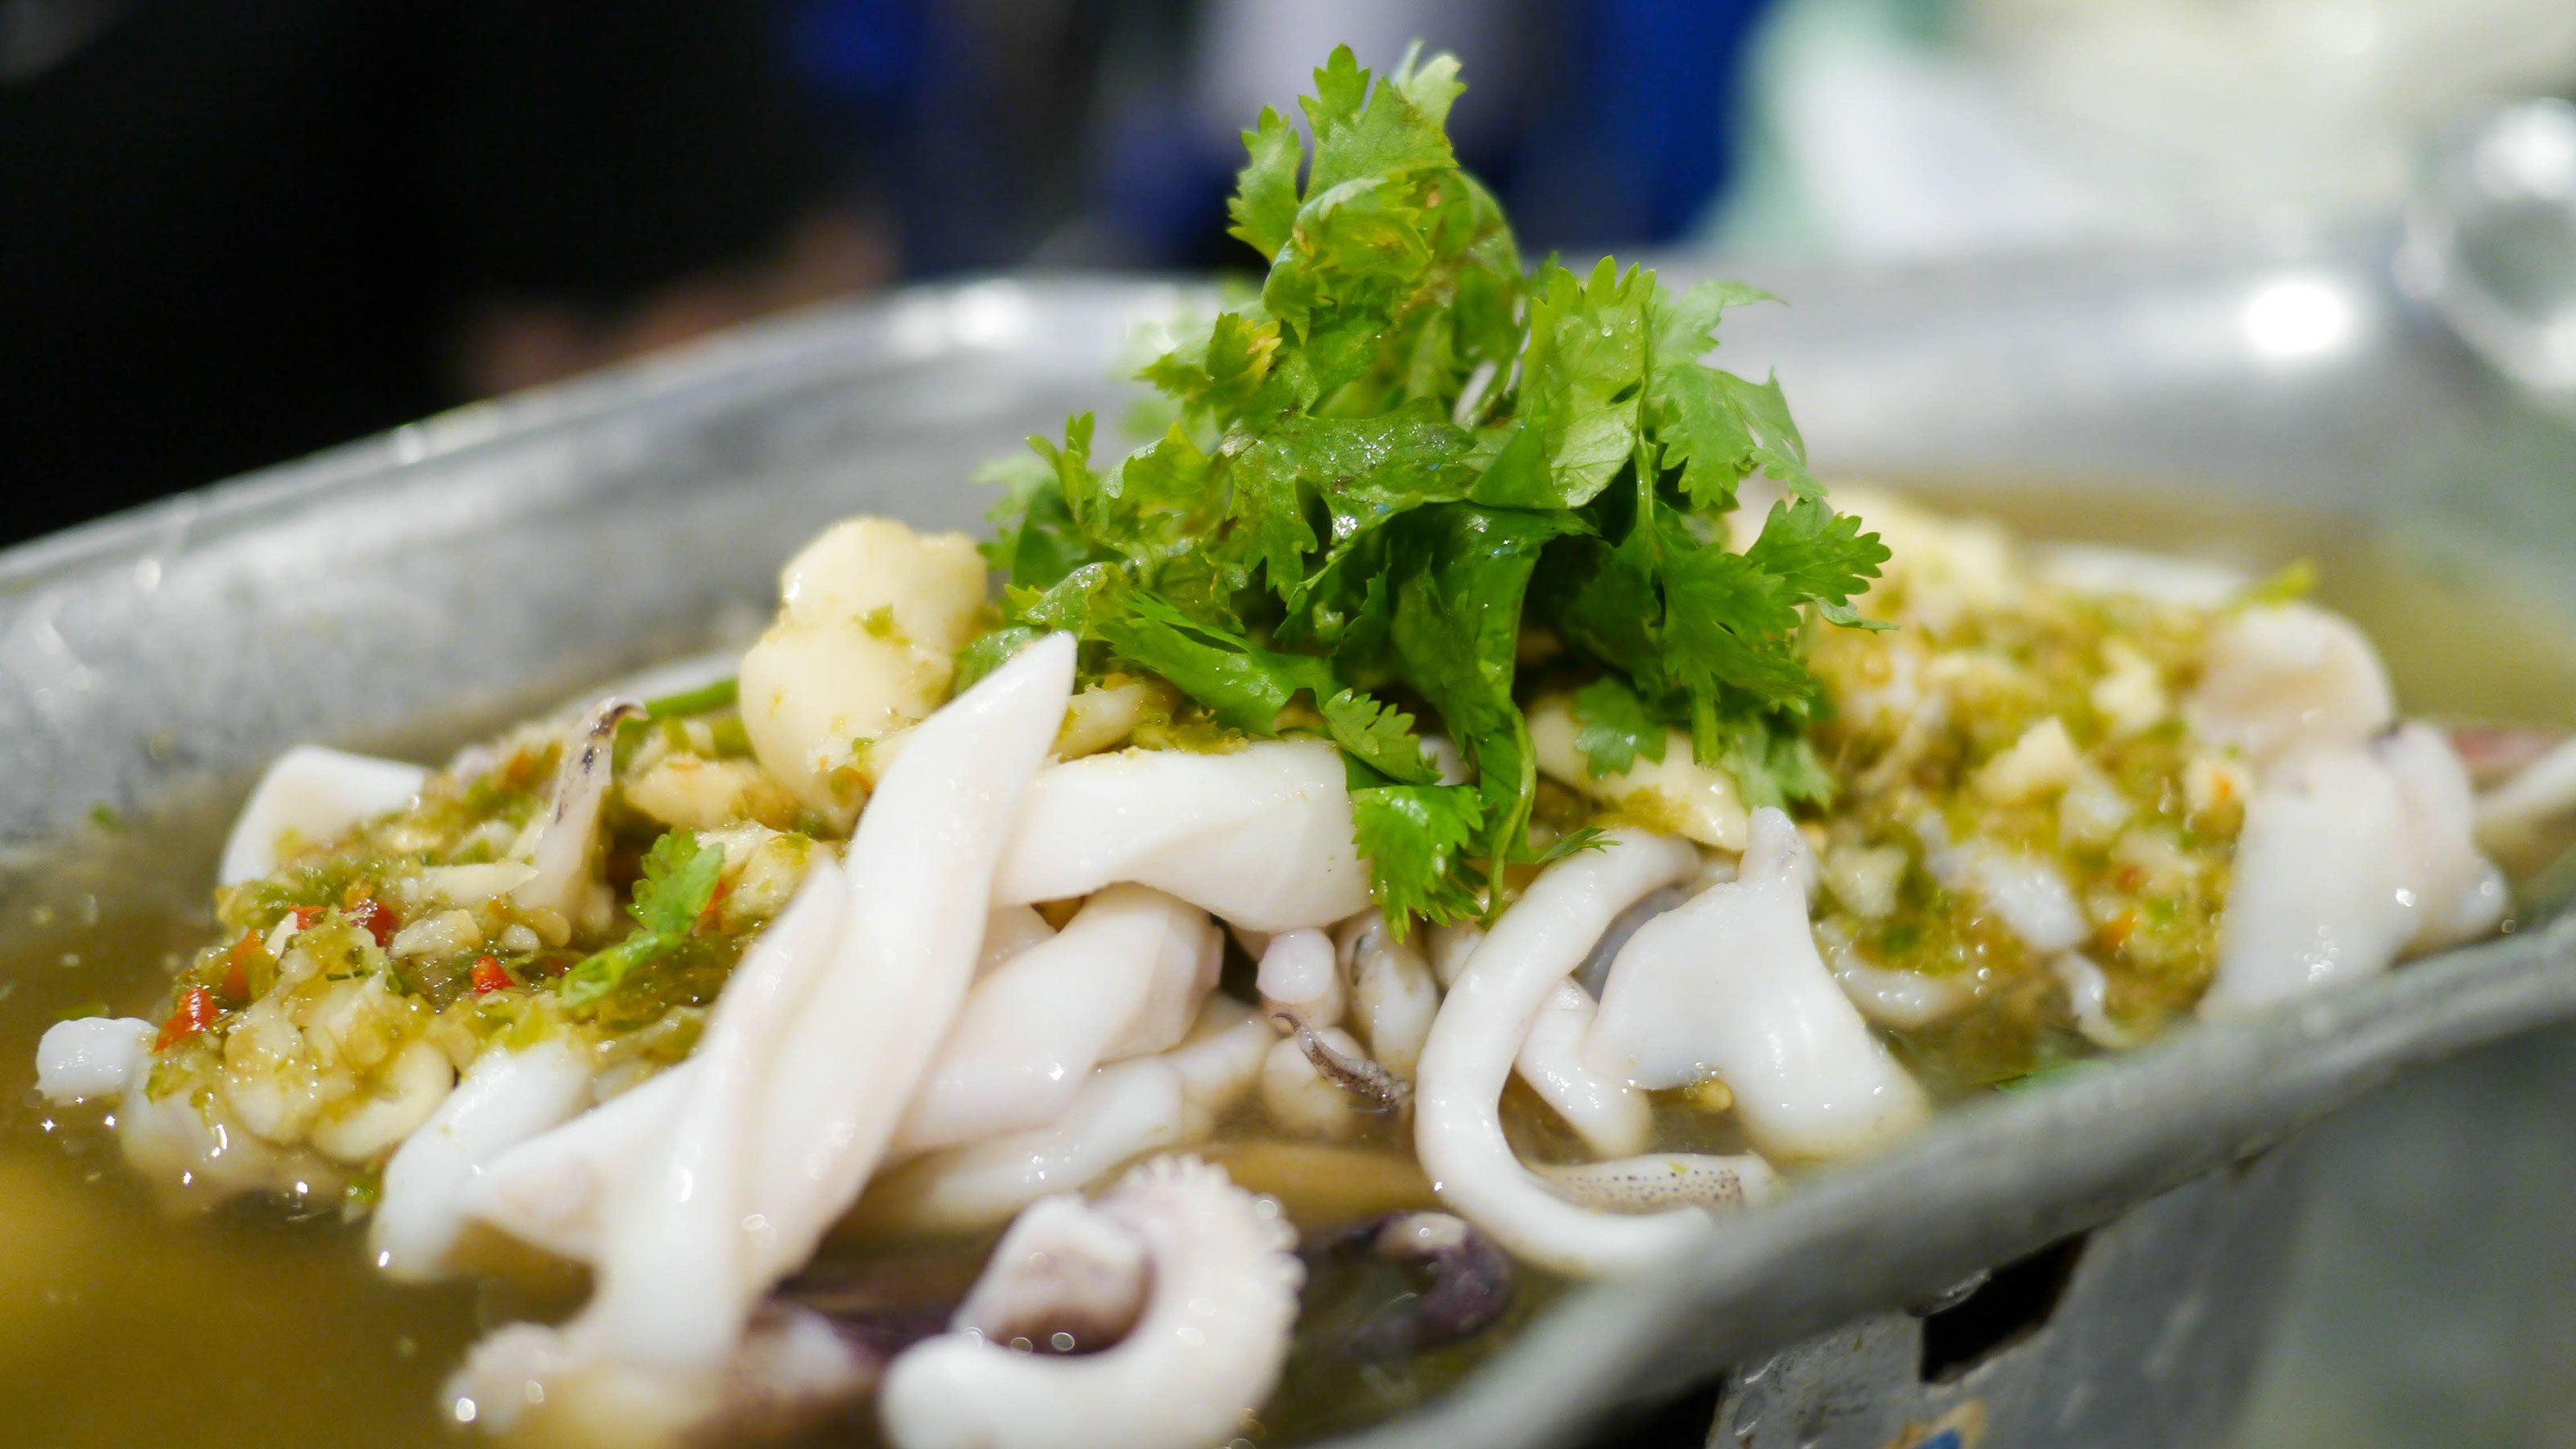 Seafood dish at the night market in Bangkok